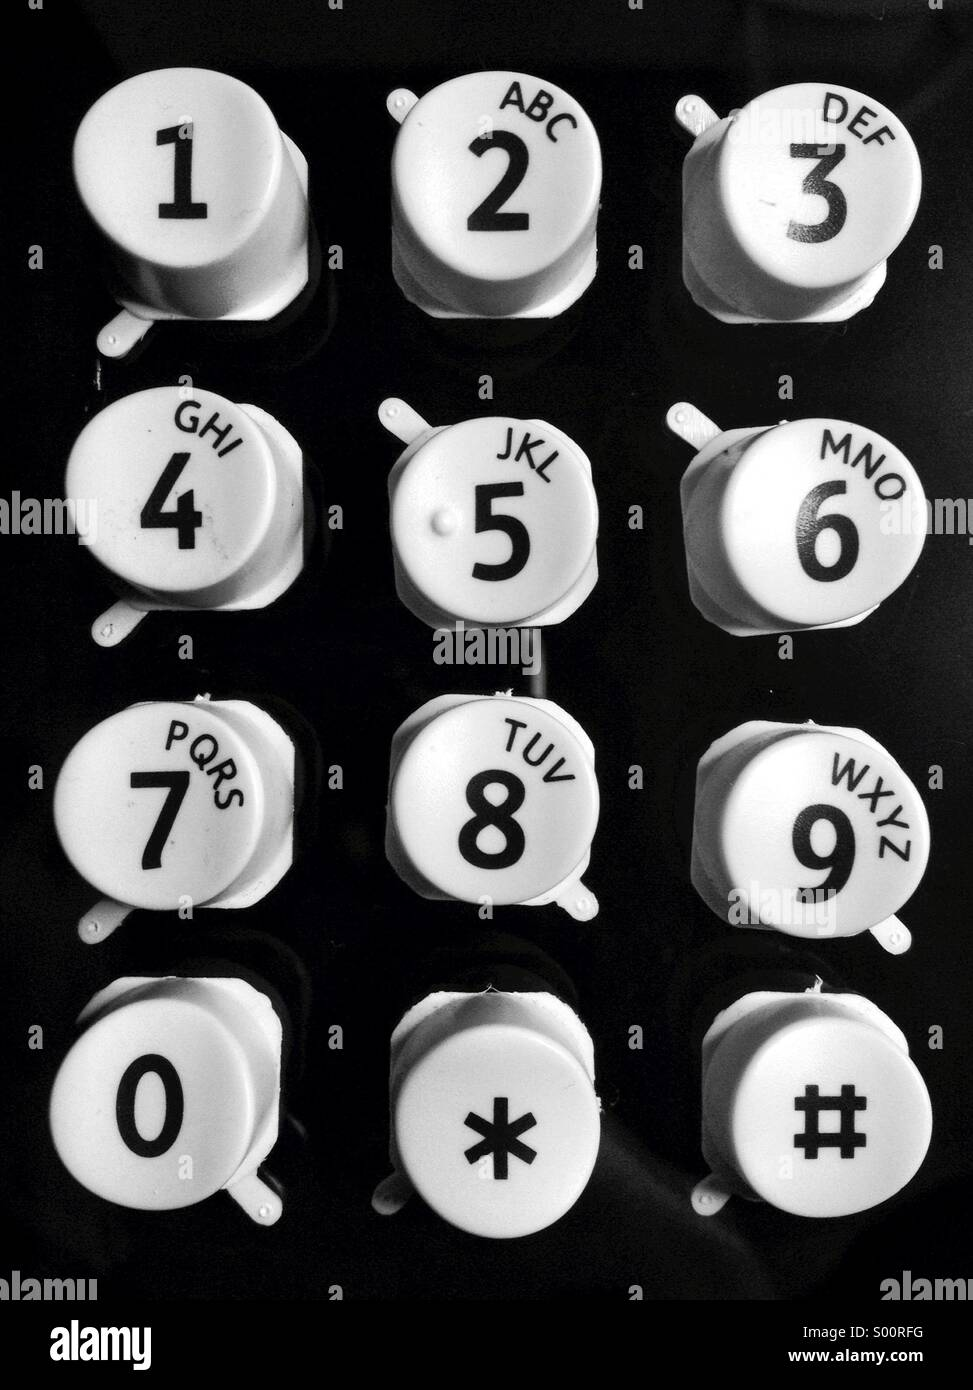 Keypad buttons - Stock Image